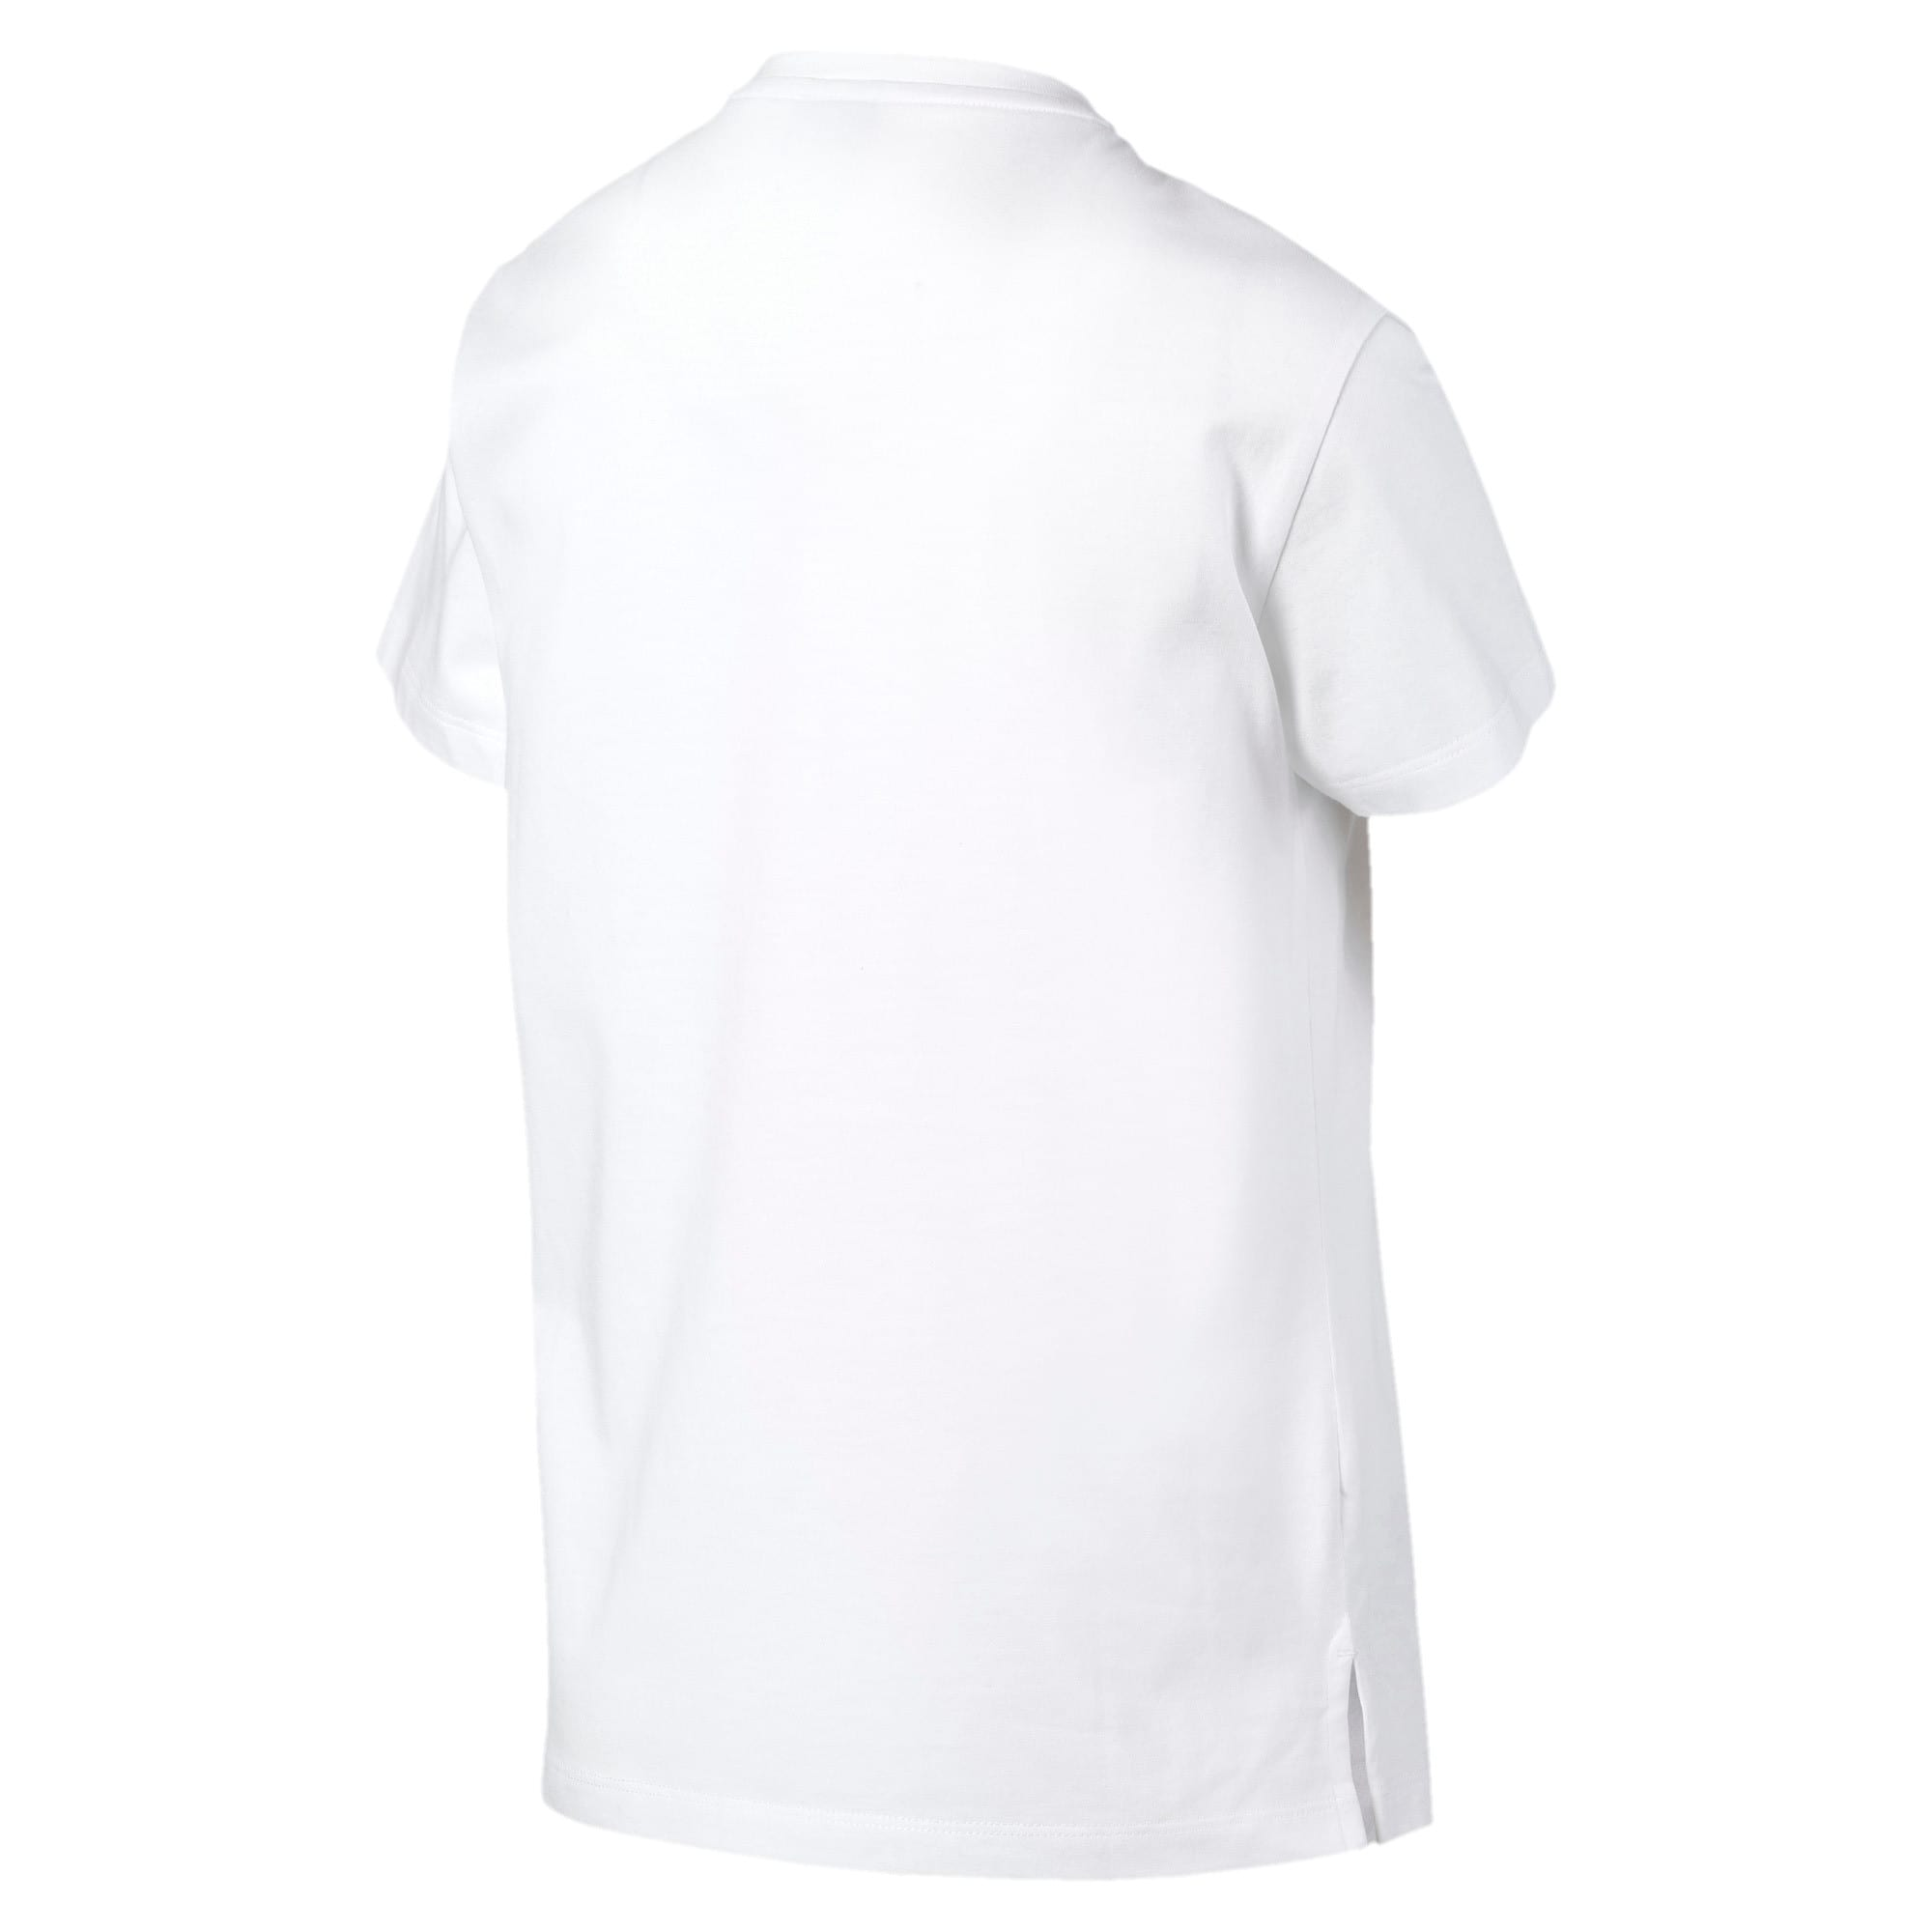 Thumbnail 5 of Classics Logo Women's Tee, Puma White, medium